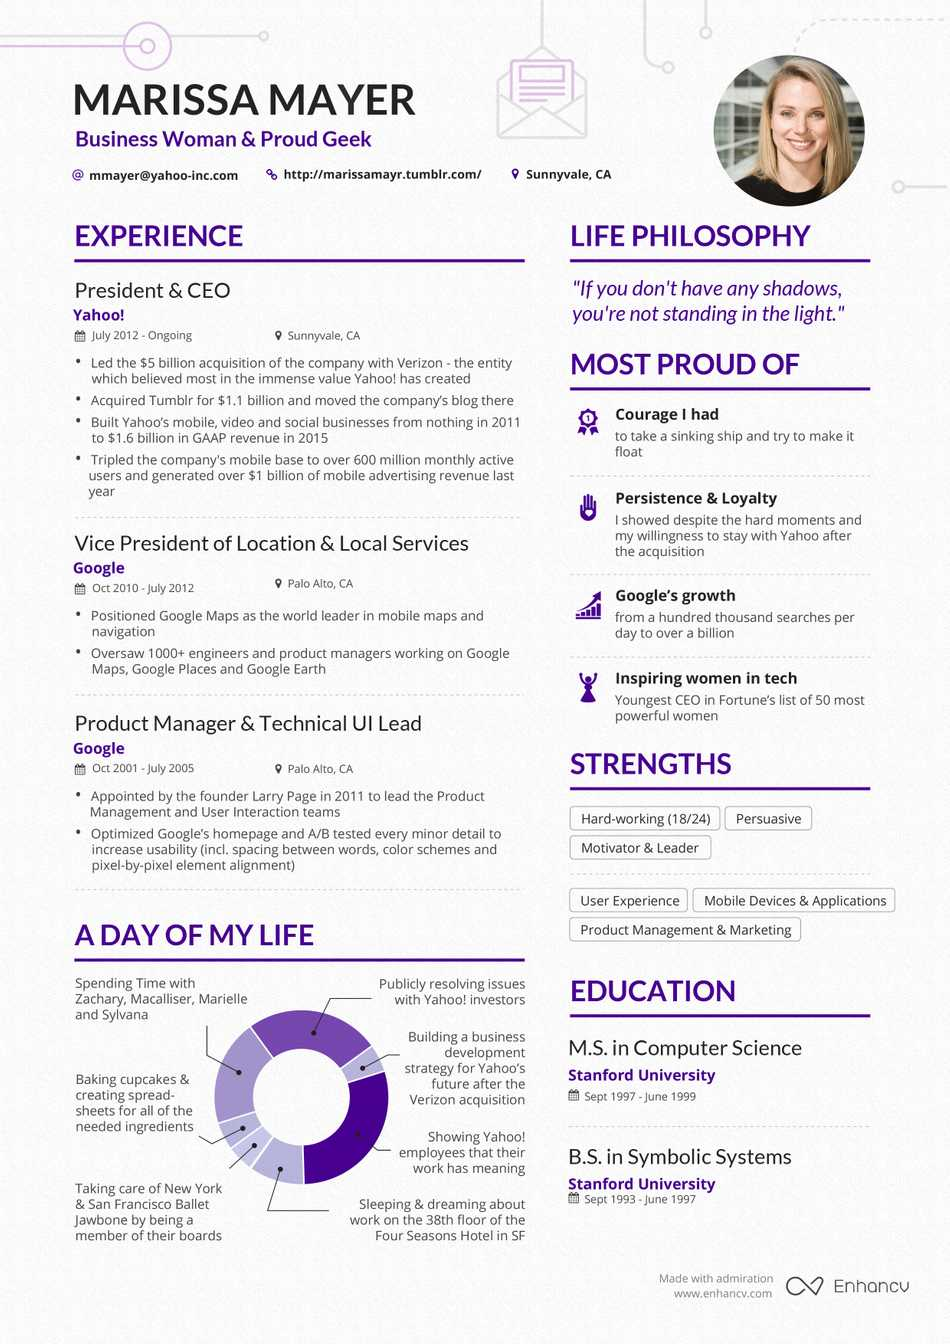 free resume builder enhancv for college students marissa mayer simple model projects Resume Free Online Resume Builder For College Students